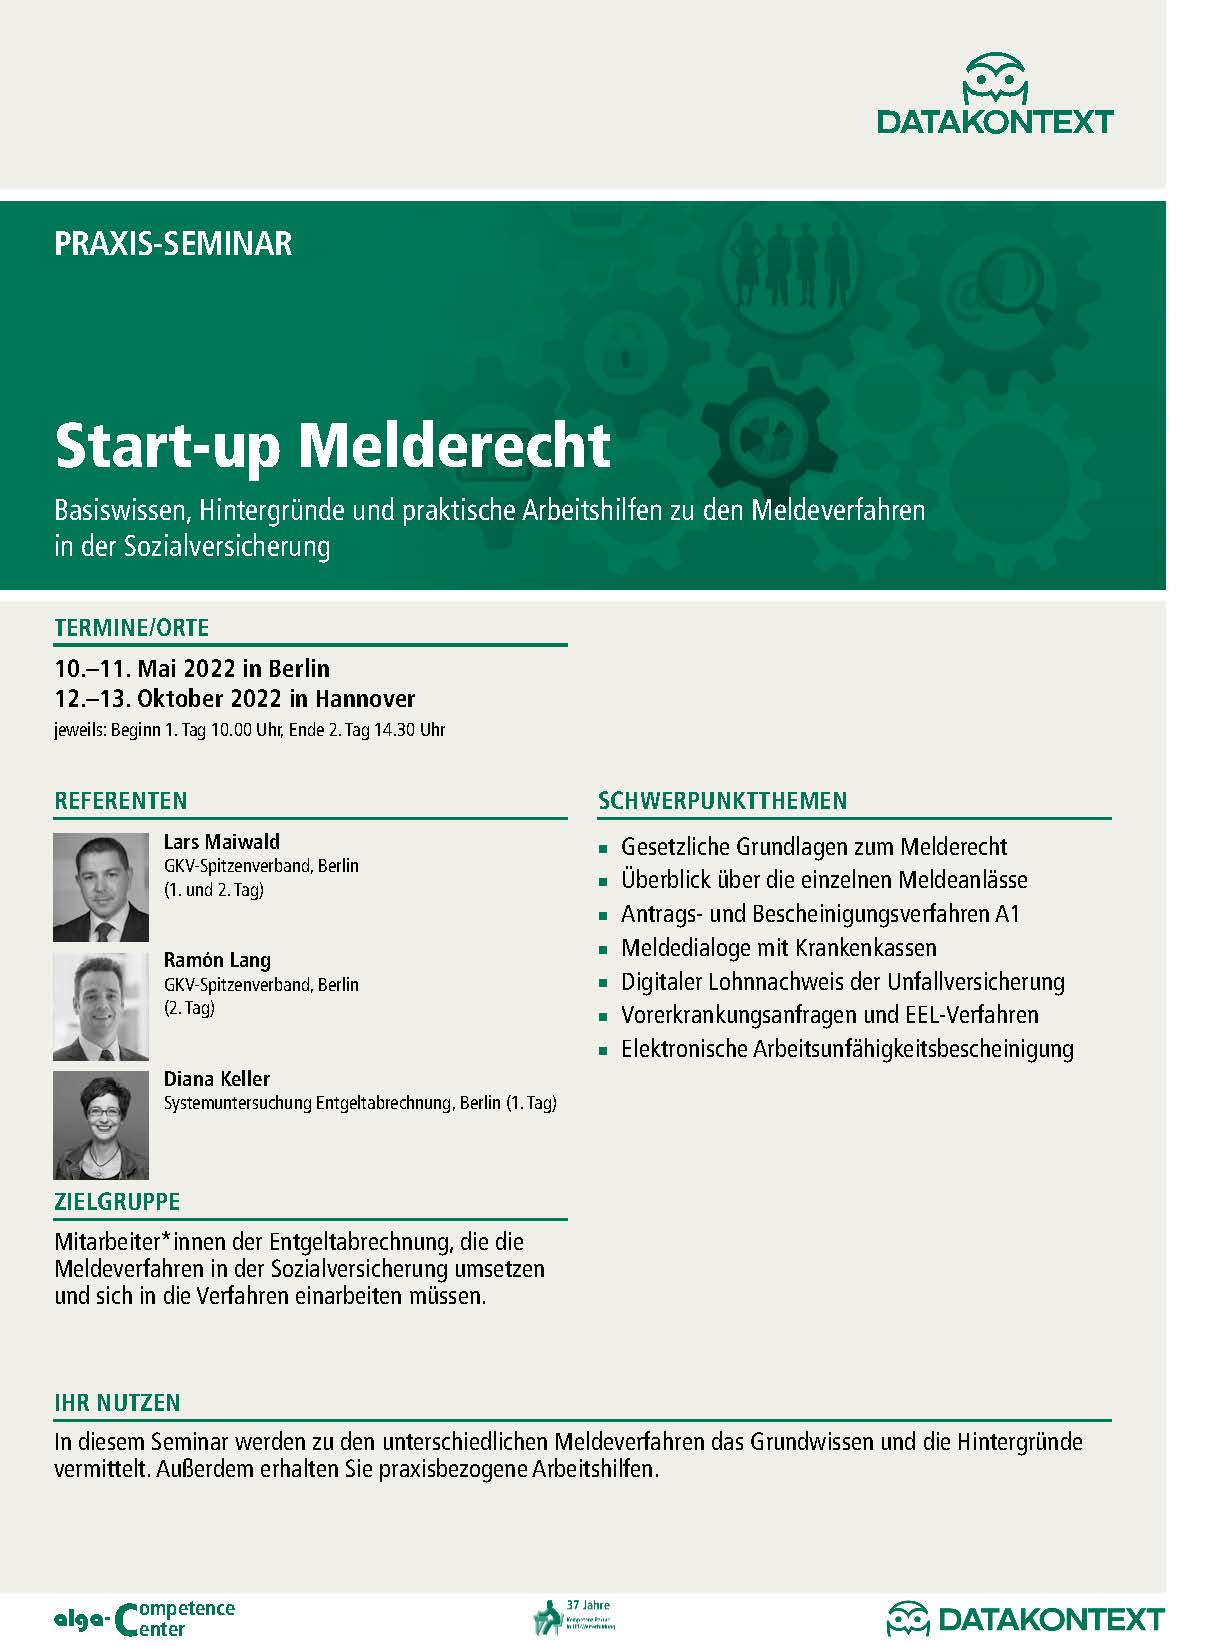 Start-up Melderecht